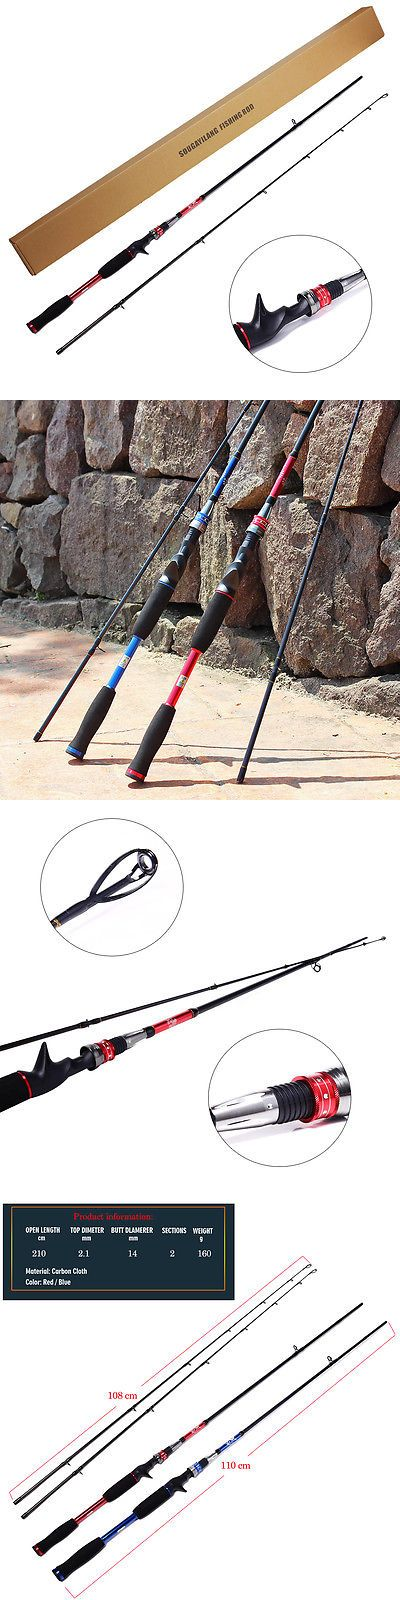 17 best ideas about saltwater fishing rods on pinterest, Fishing Rod